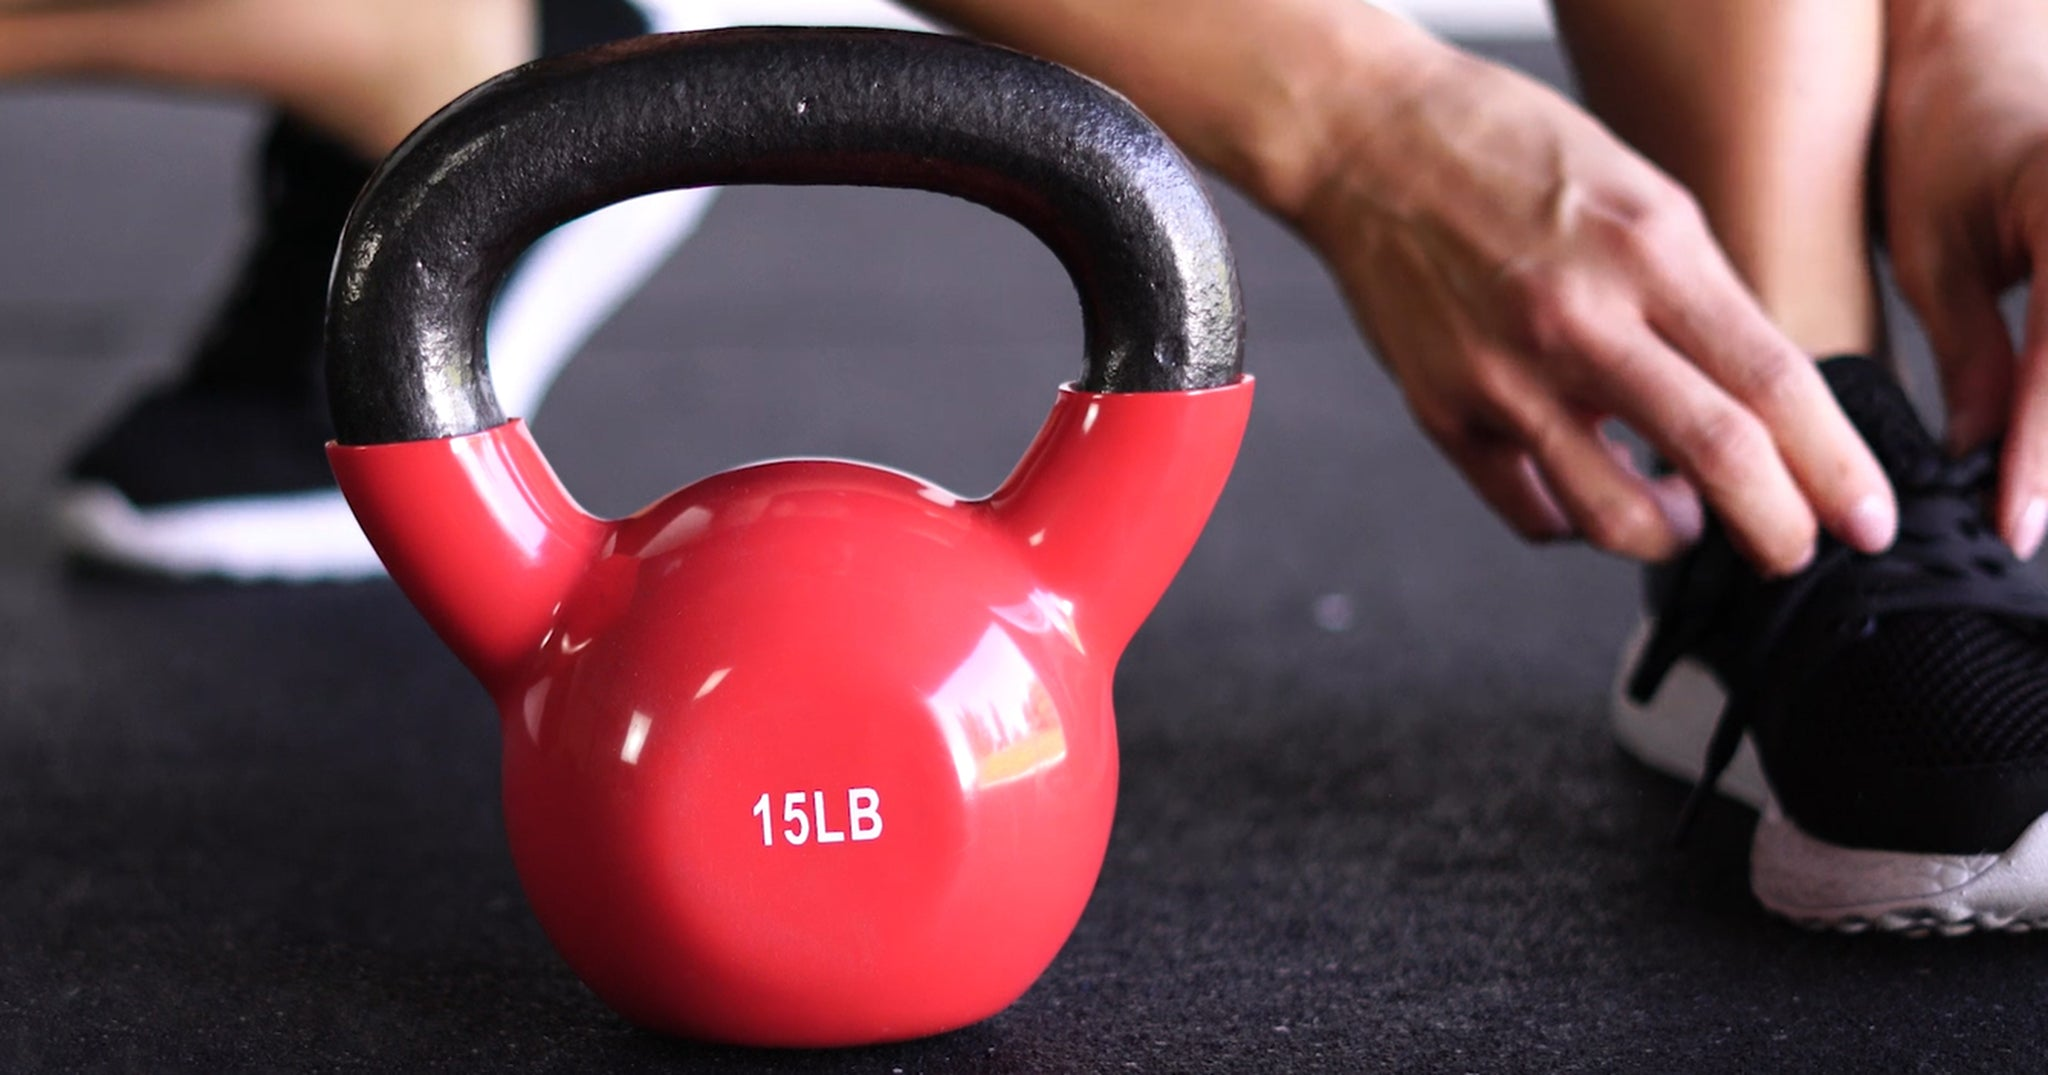 a red 15lb kettlebell and a person ties shoes